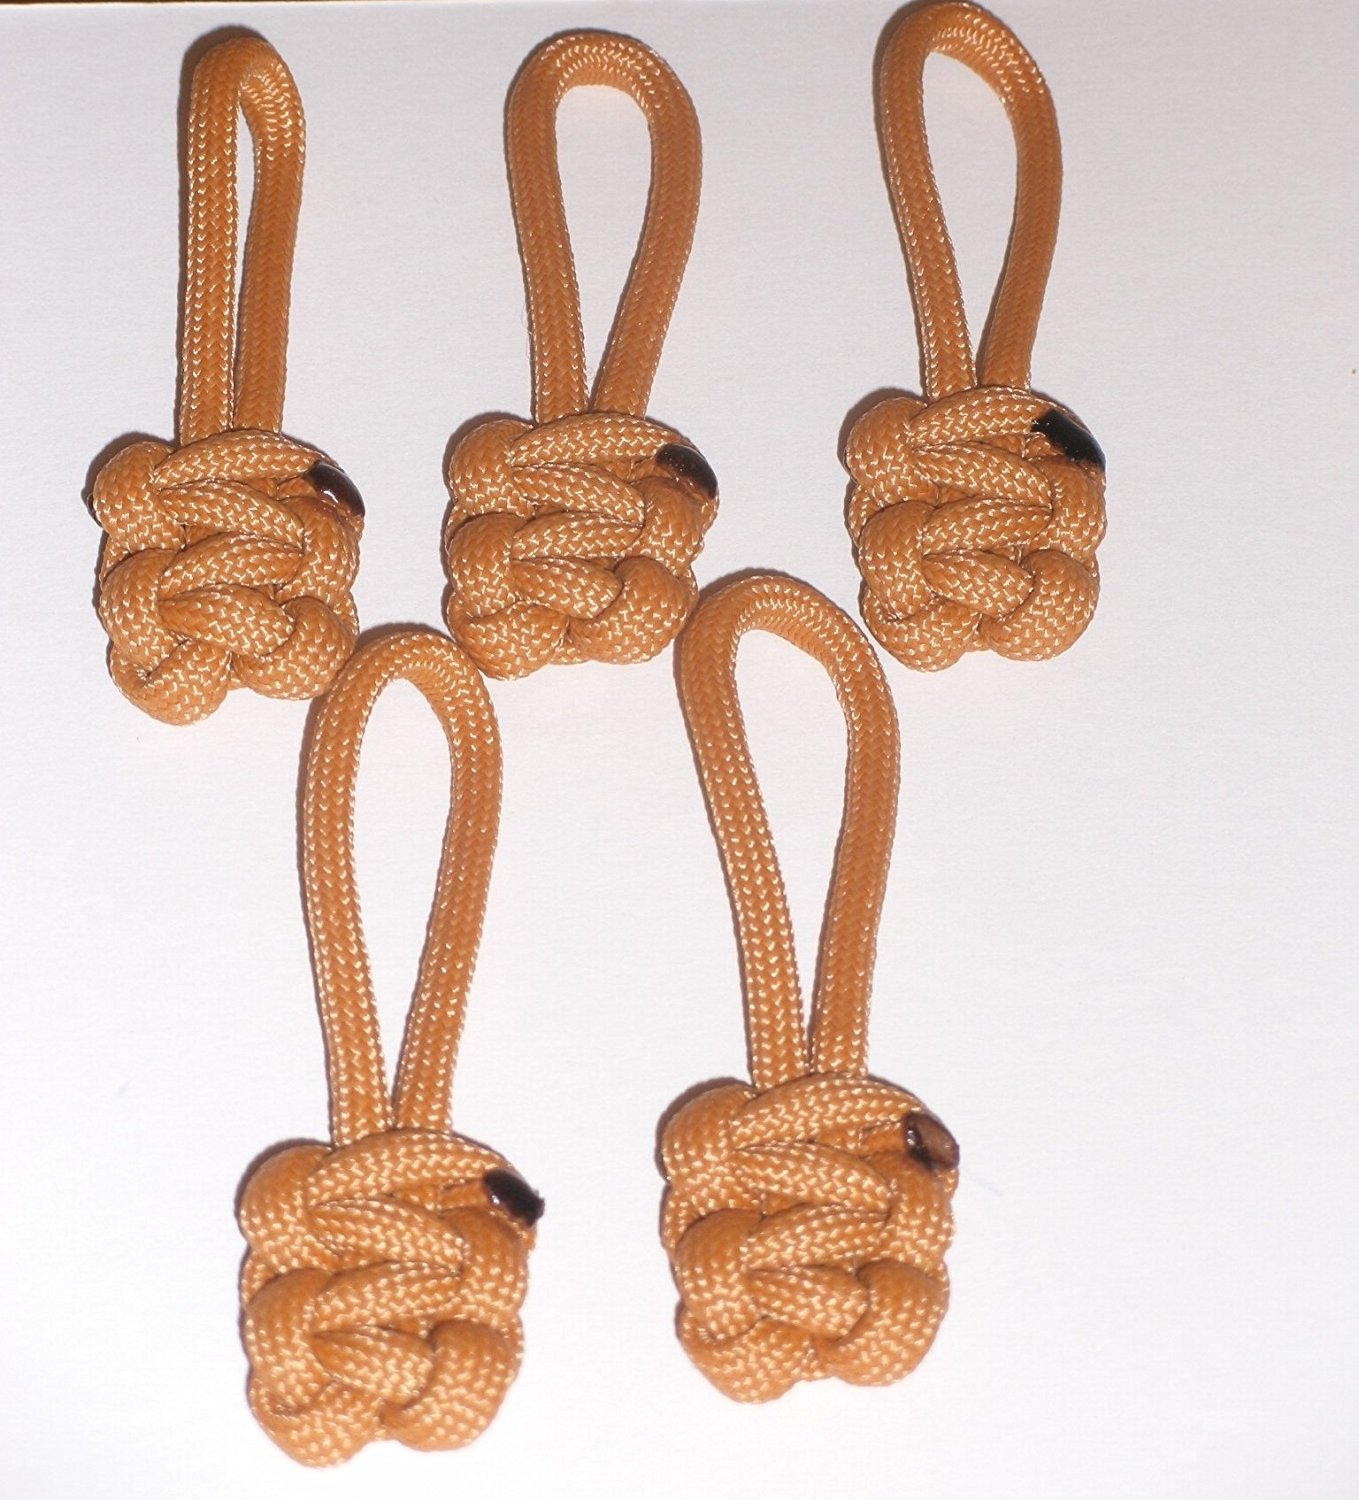 RedVex Paracord Zipper Pulls / Lanyards - Lot of 5 - ~2.5 - Marigold